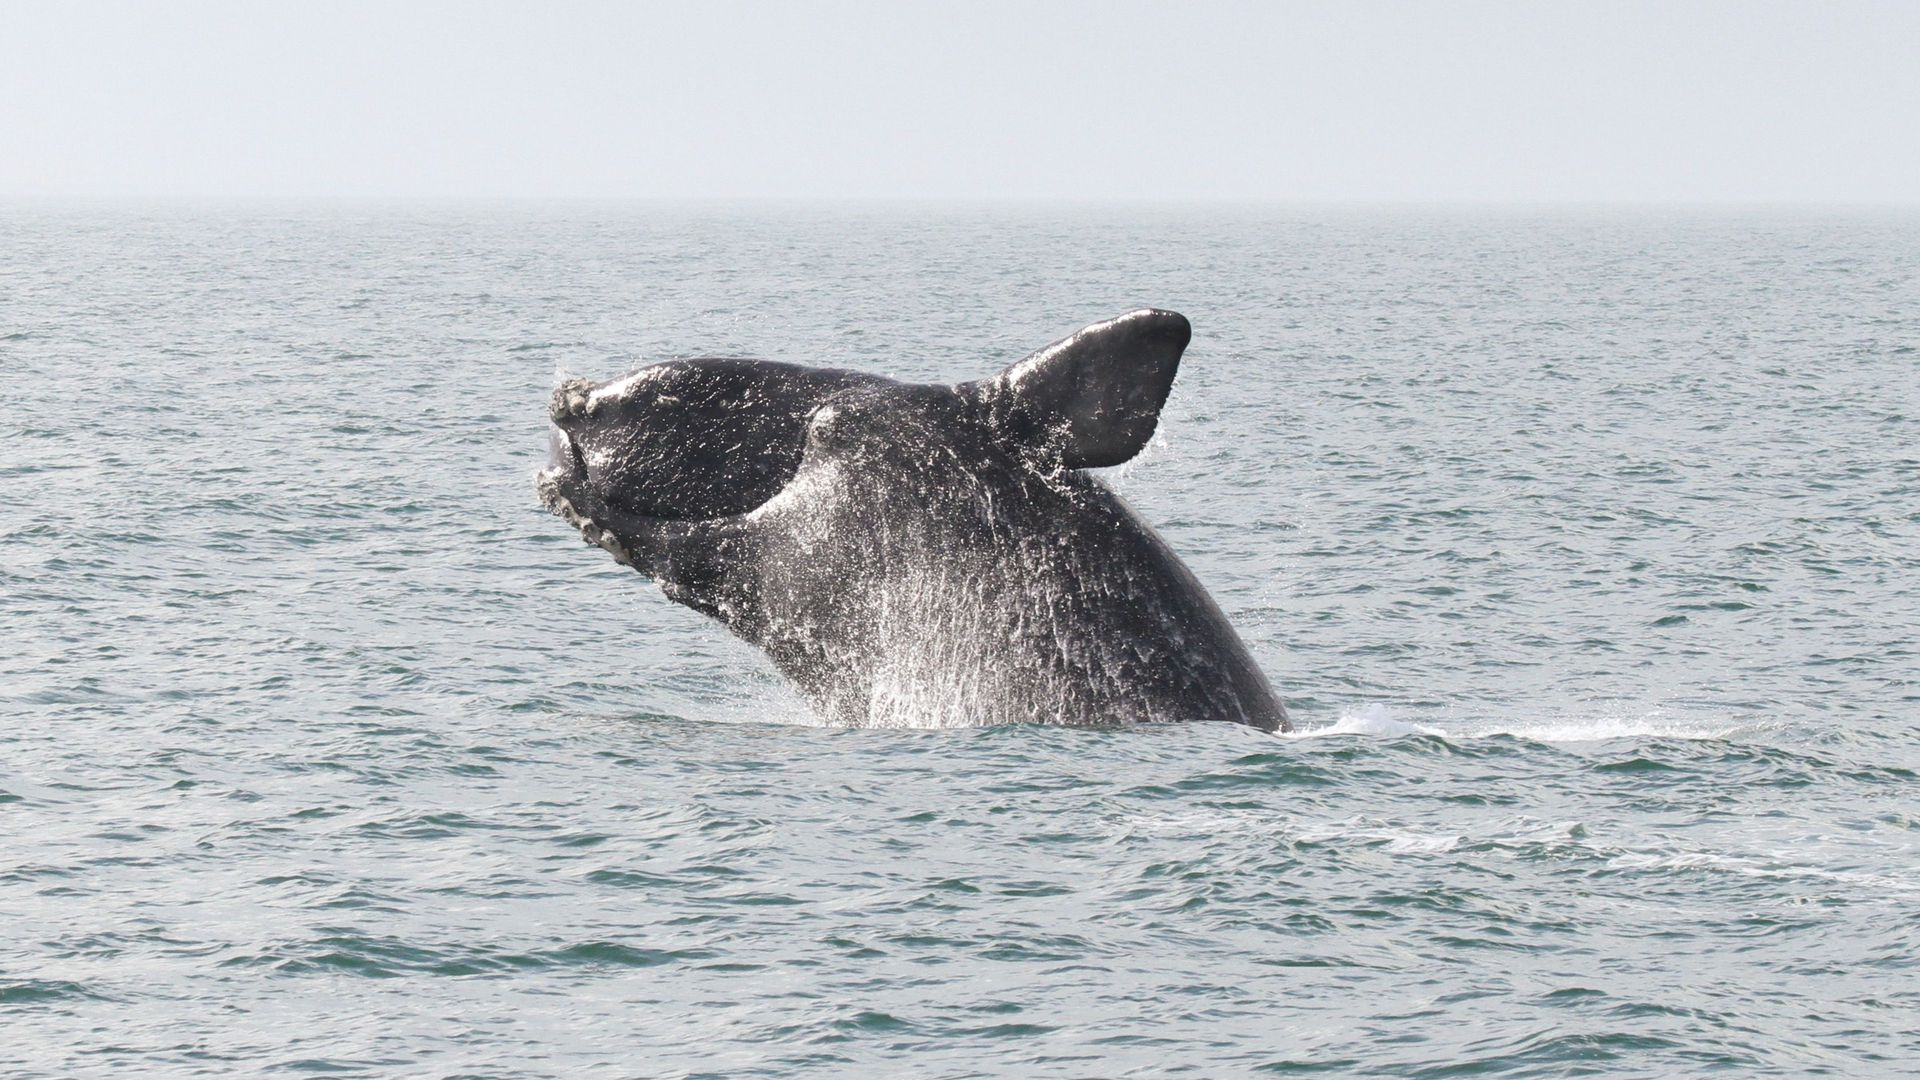 An endangered right whale breaches on a sunny day off the coast of Georgia